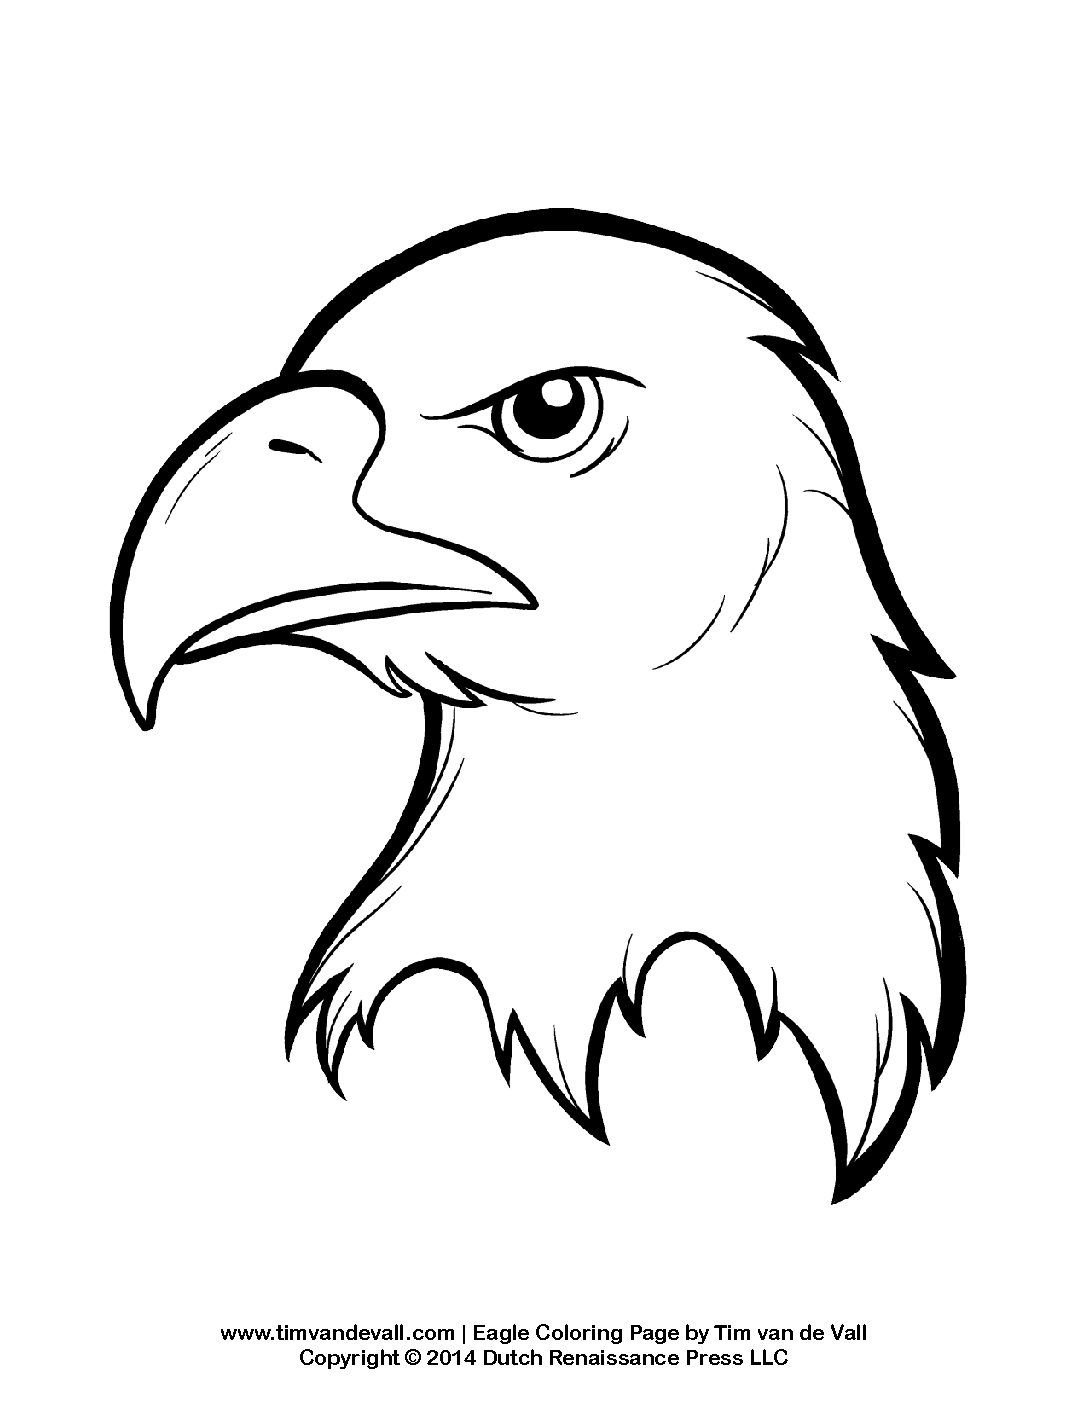 bald eagle coloring sheet bald eagle coloring pages download and print for free bald coloring eagle sheet